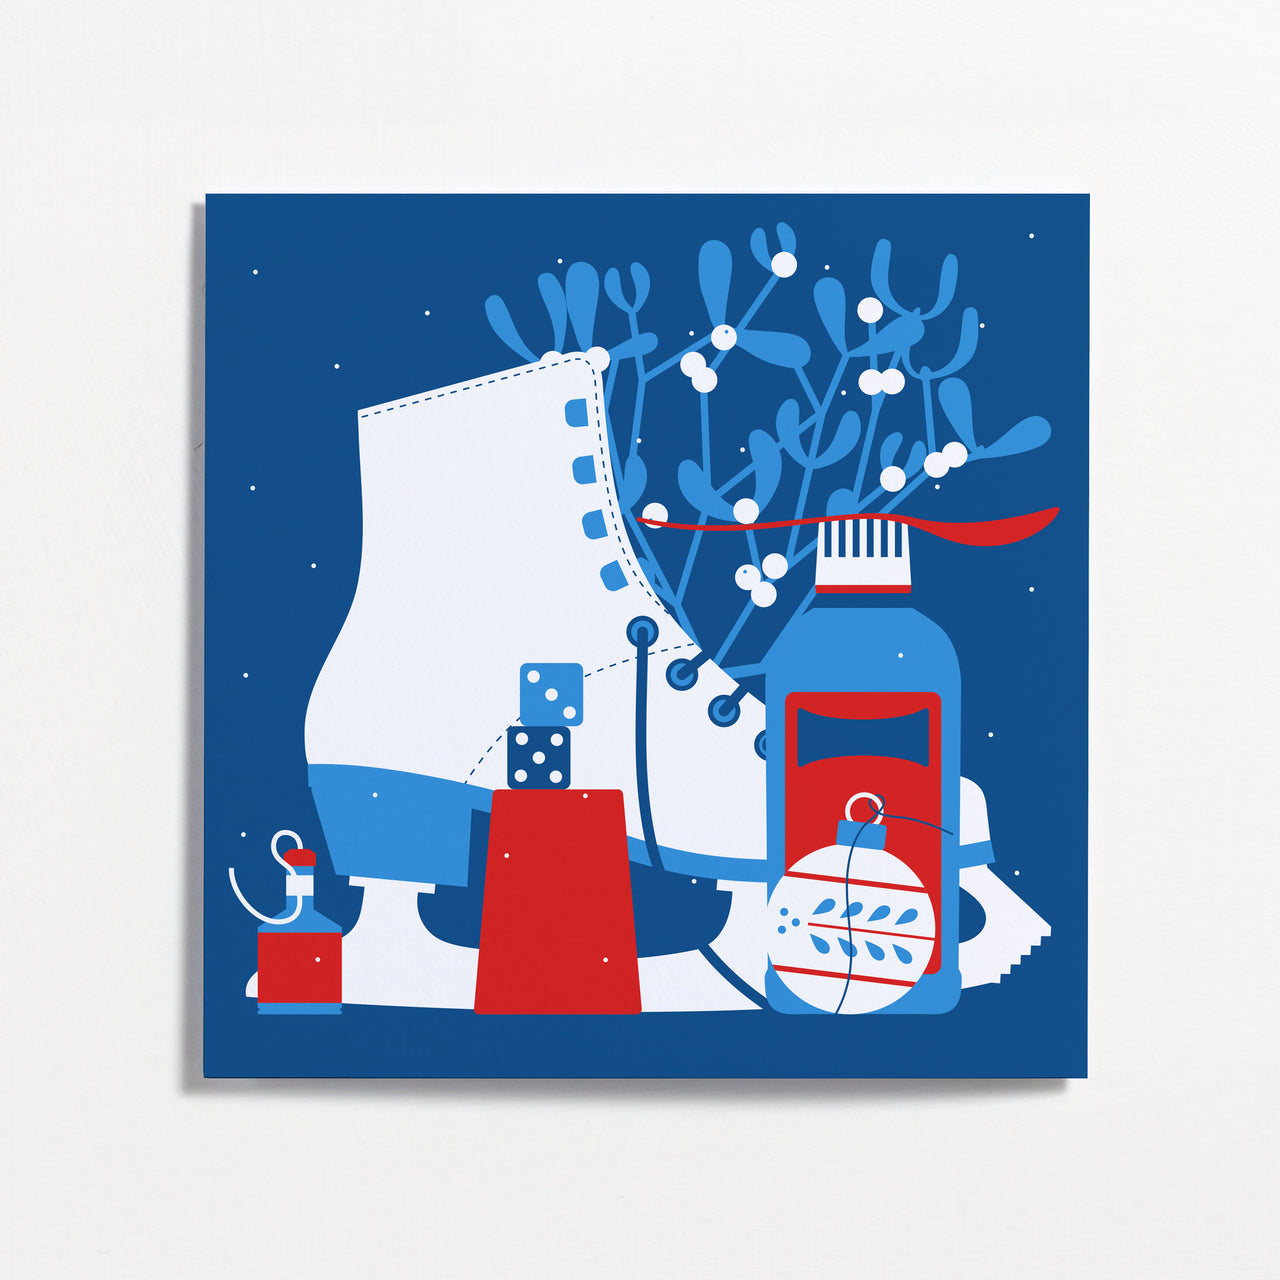 Ice Skate Winter Frieze Christmas Card by Crispin Finn